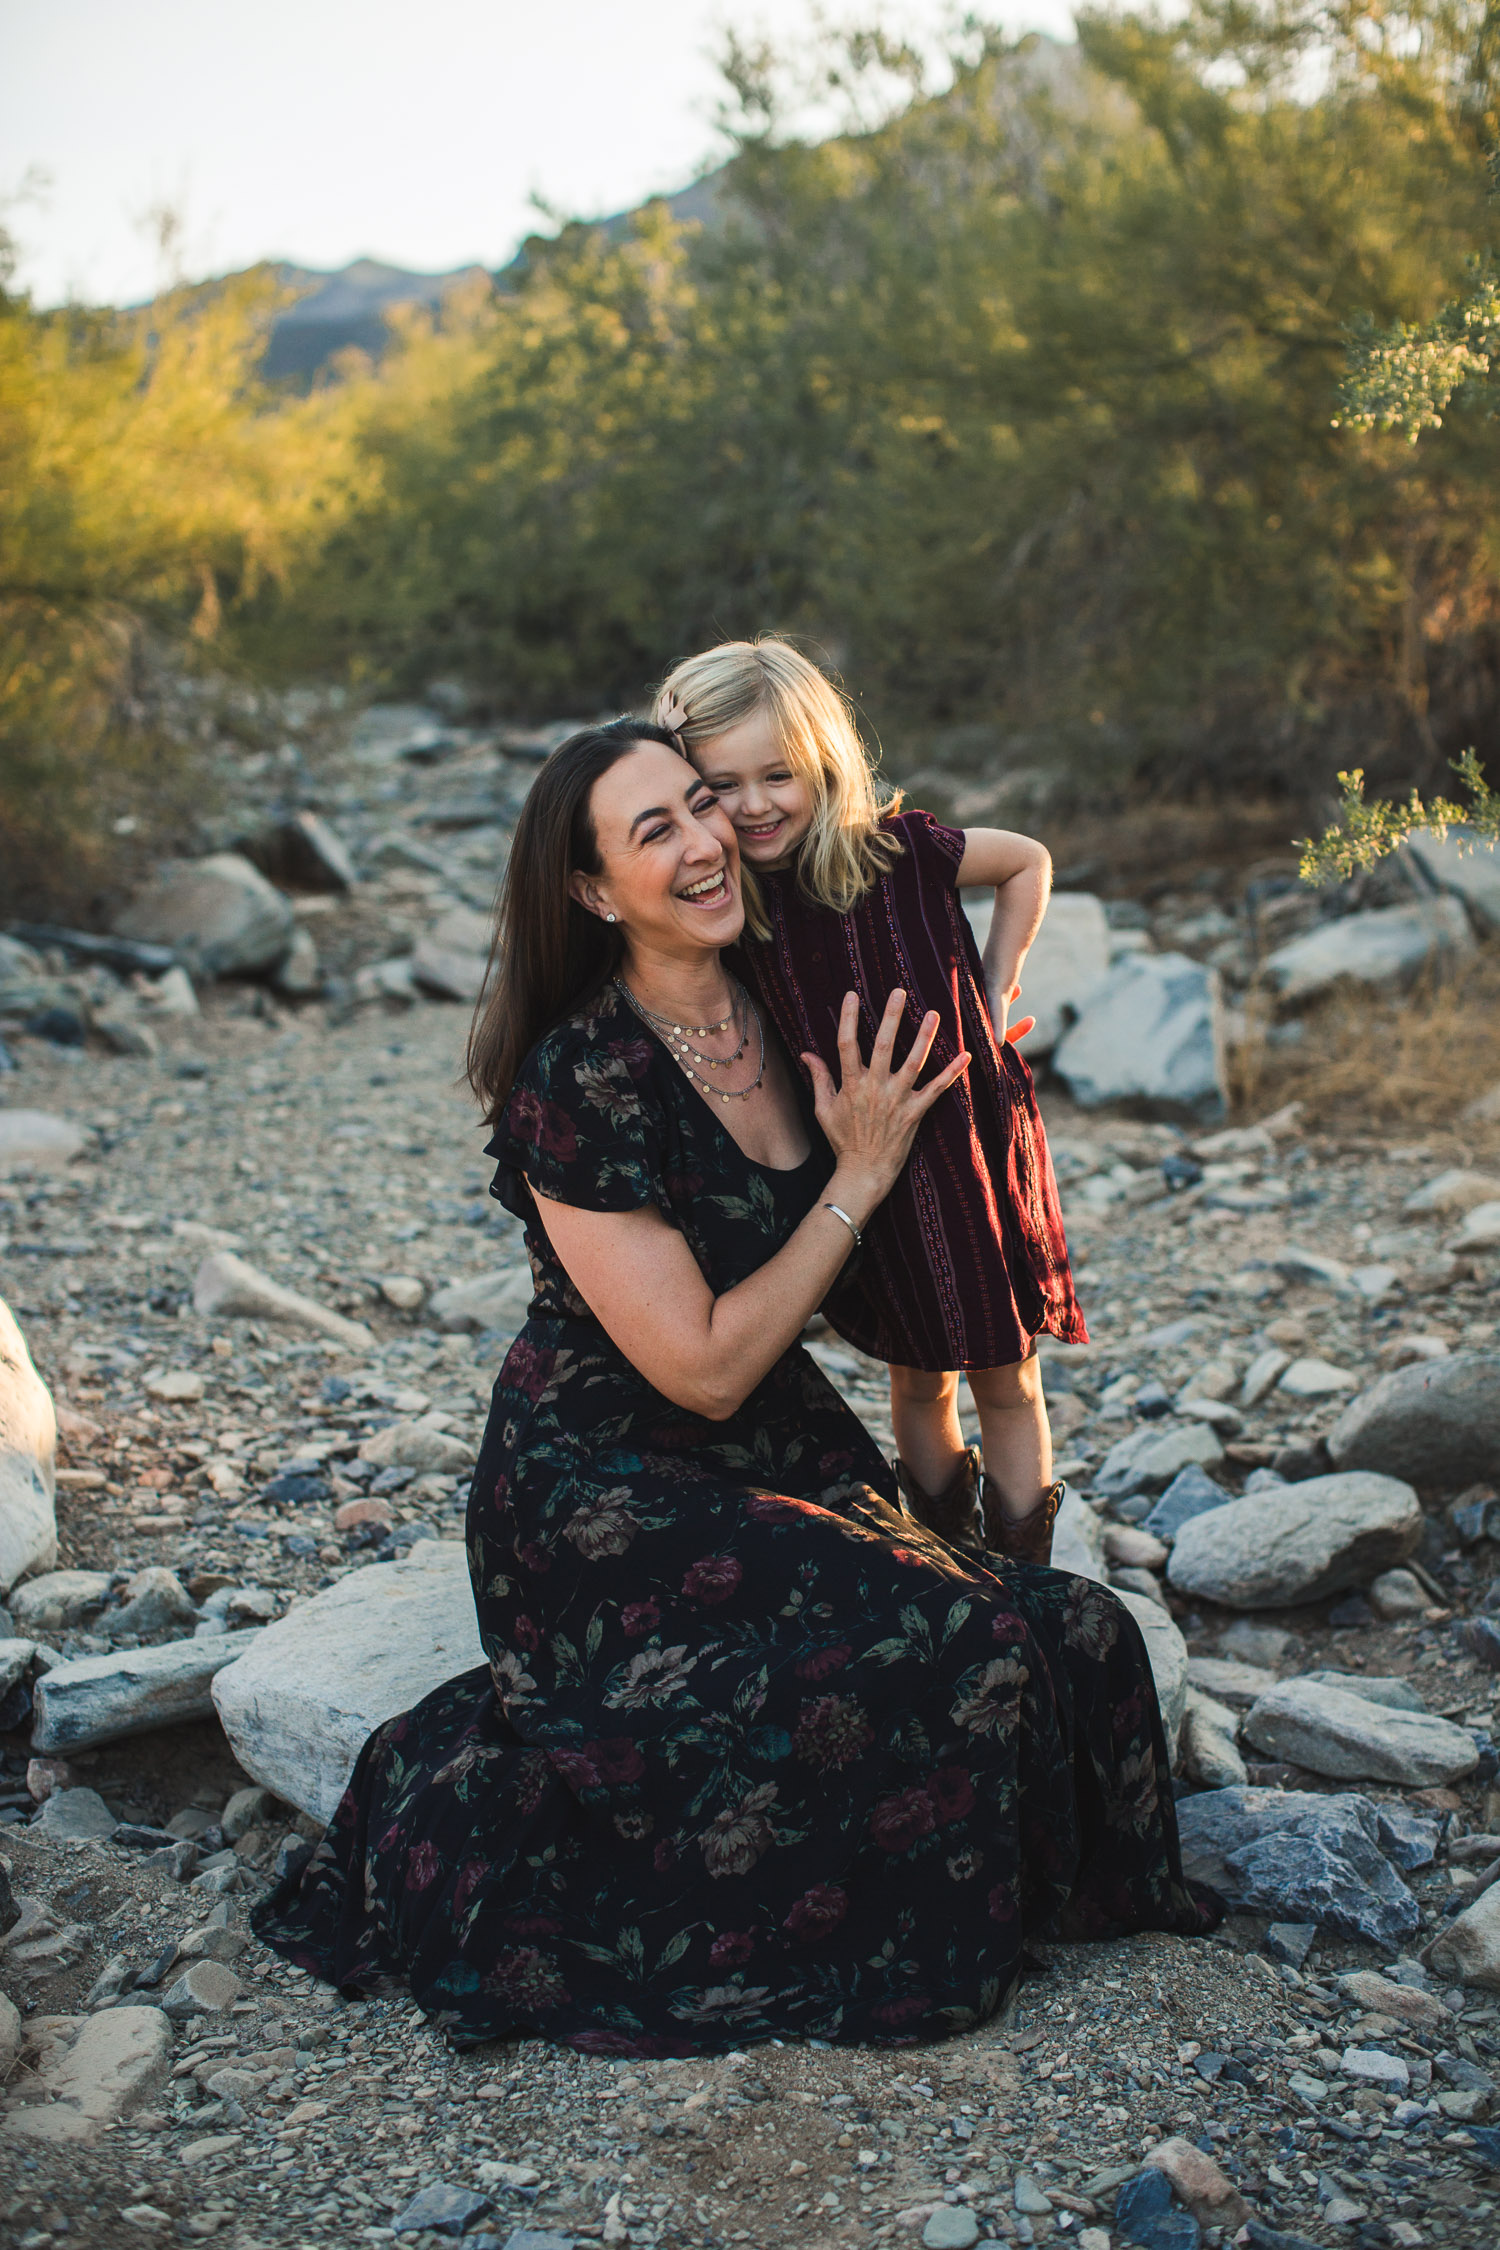 mom and daughter laughing beautiful candid moment desert rocks Phoenix Family Photograph